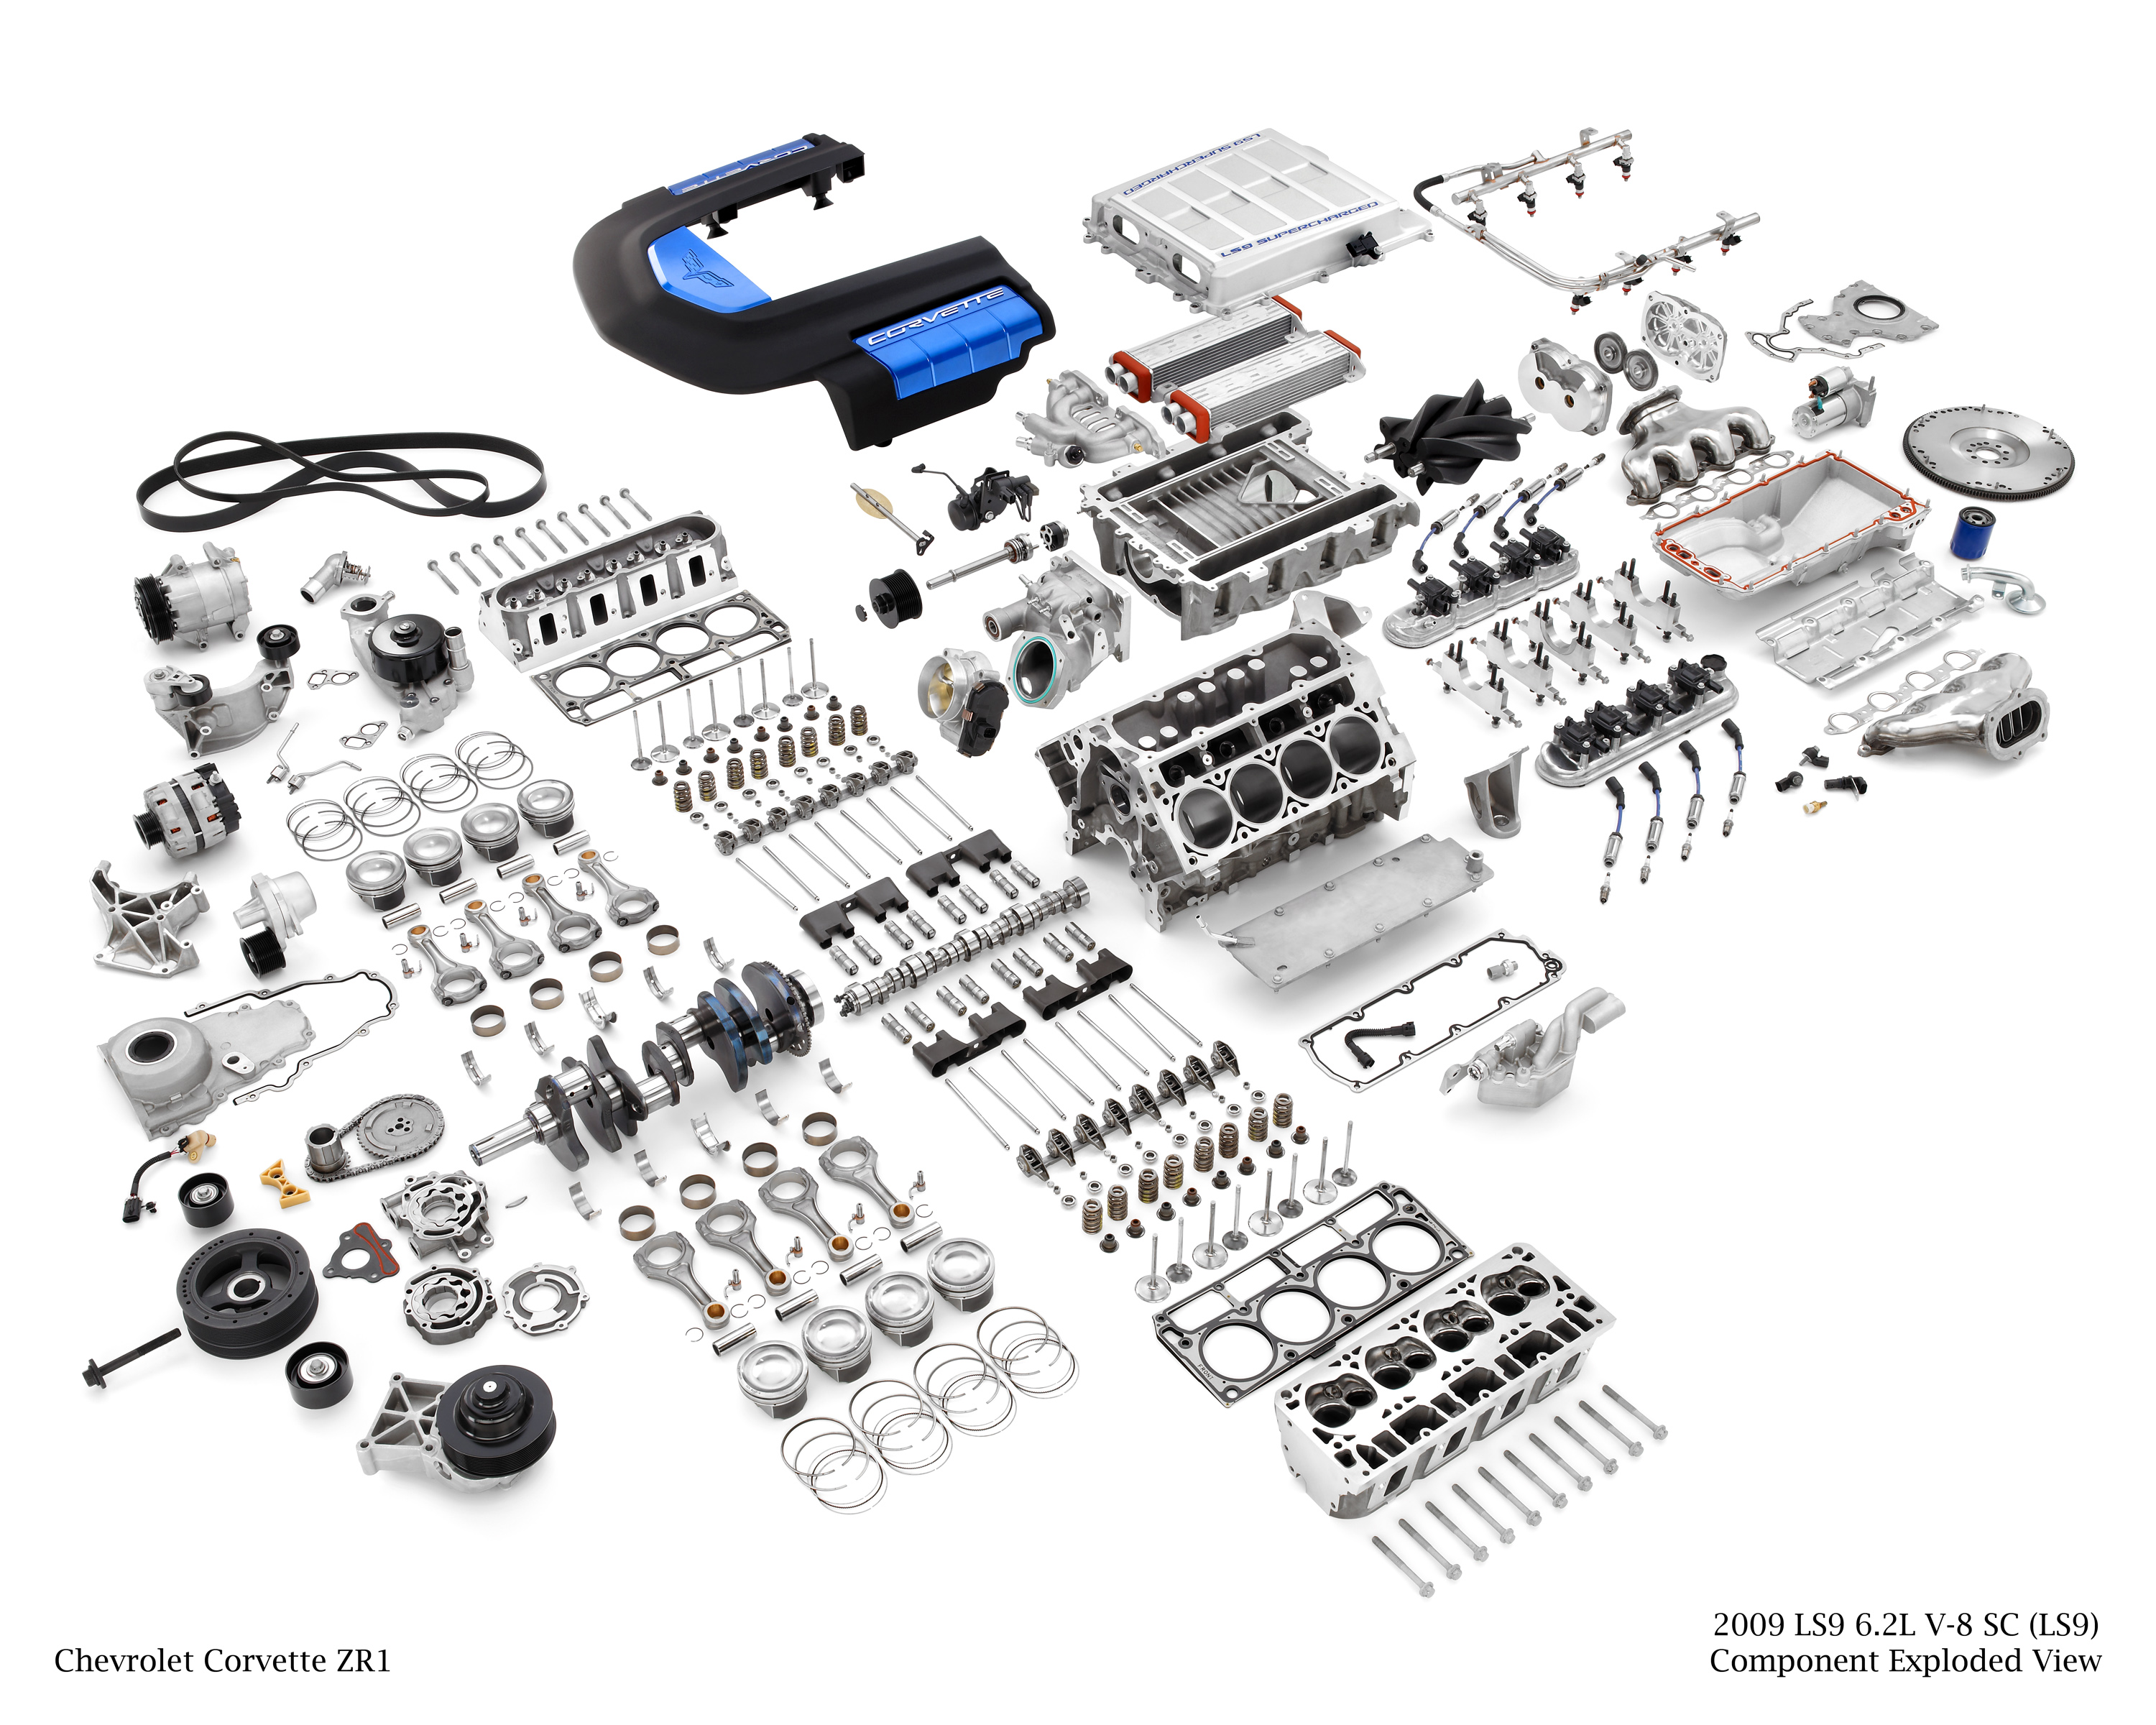 build your own ls7 or ls9 crate engine